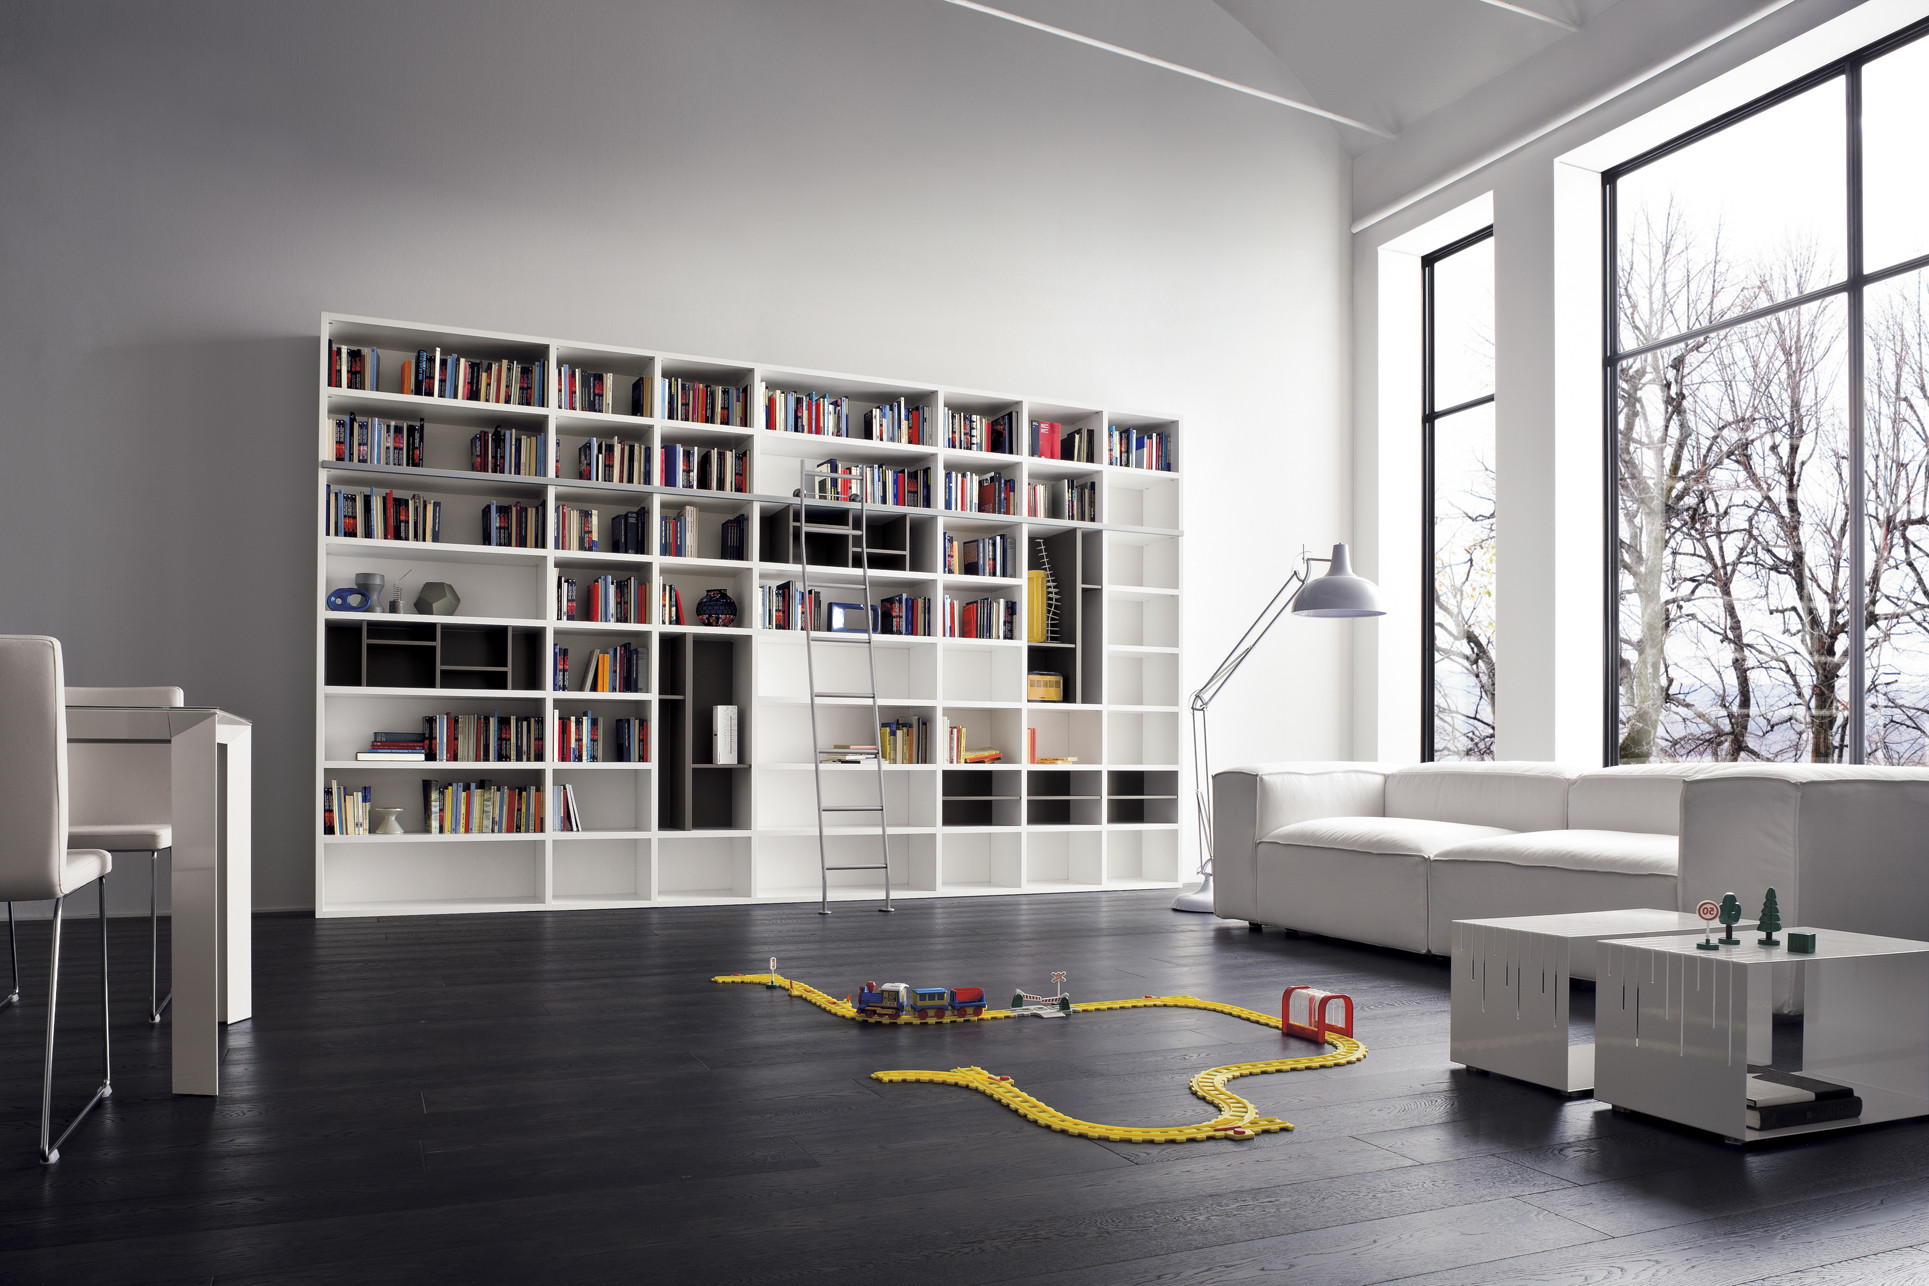 Interior Small Library Ideas Hd Wallpaper Home Office Under A Pile Of Books 1929x1286 Wallpaper Teahub Io